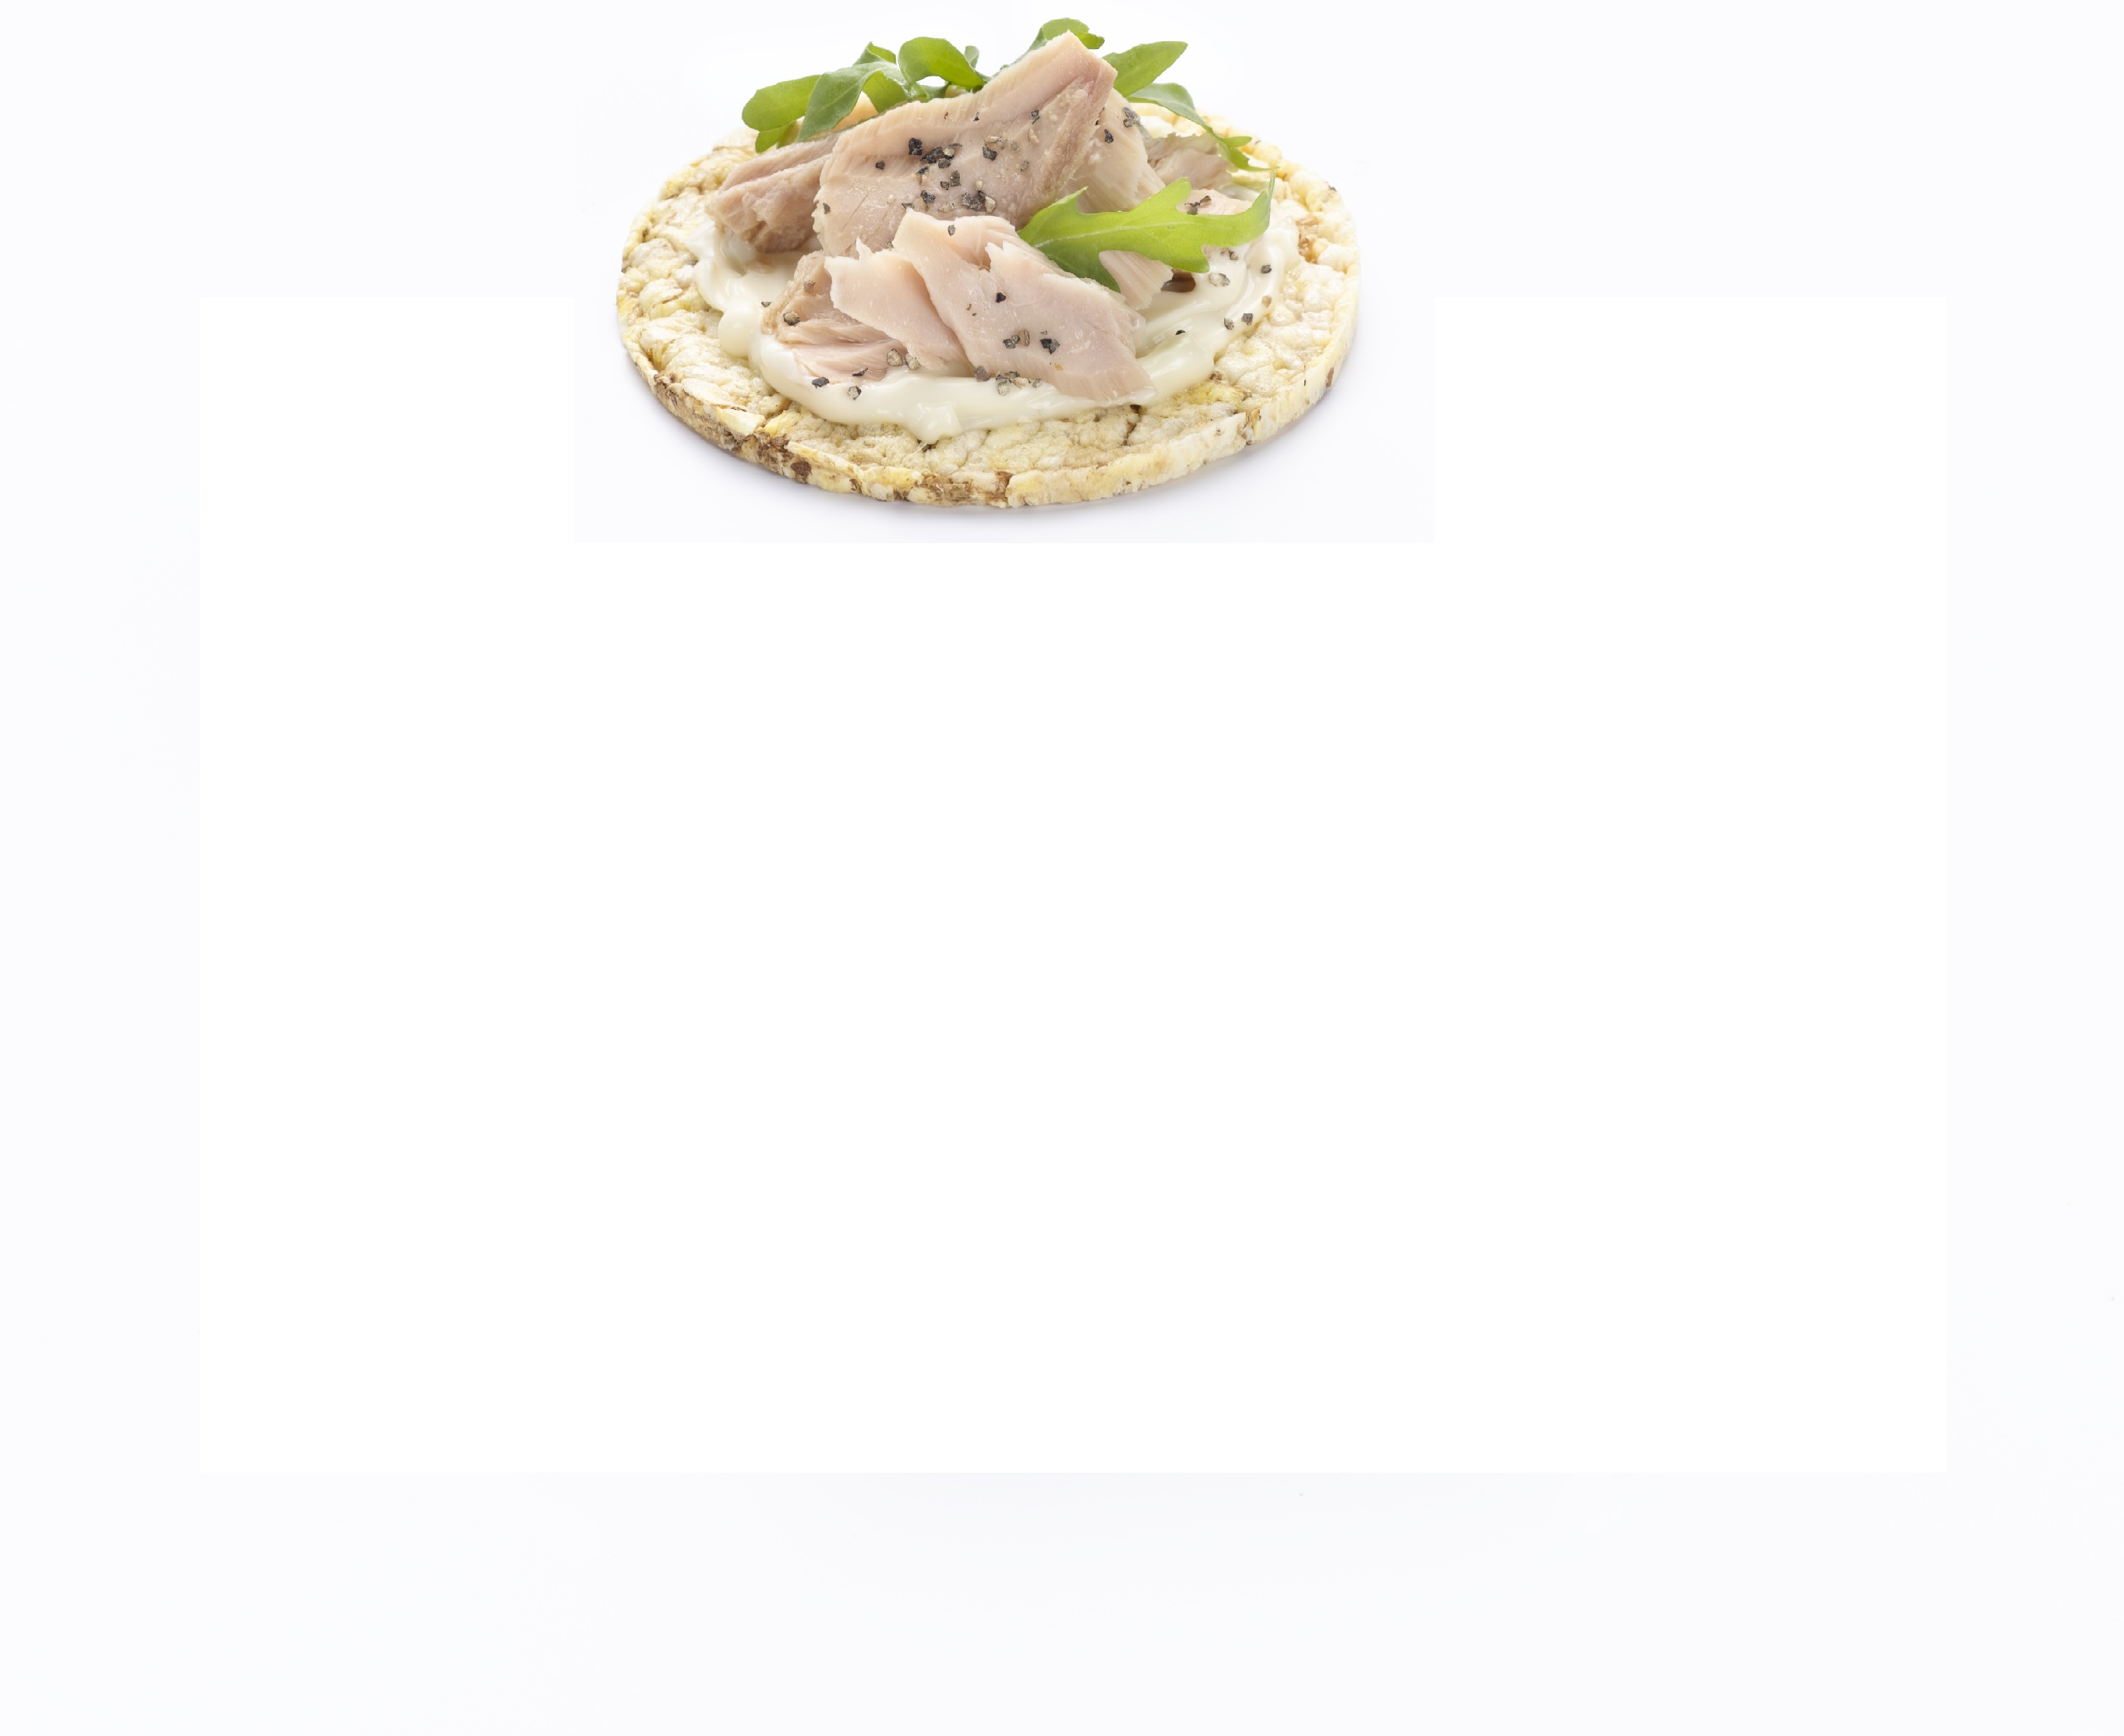 Quick office lunch of tuna & mayonnaise on Corn Thins slices